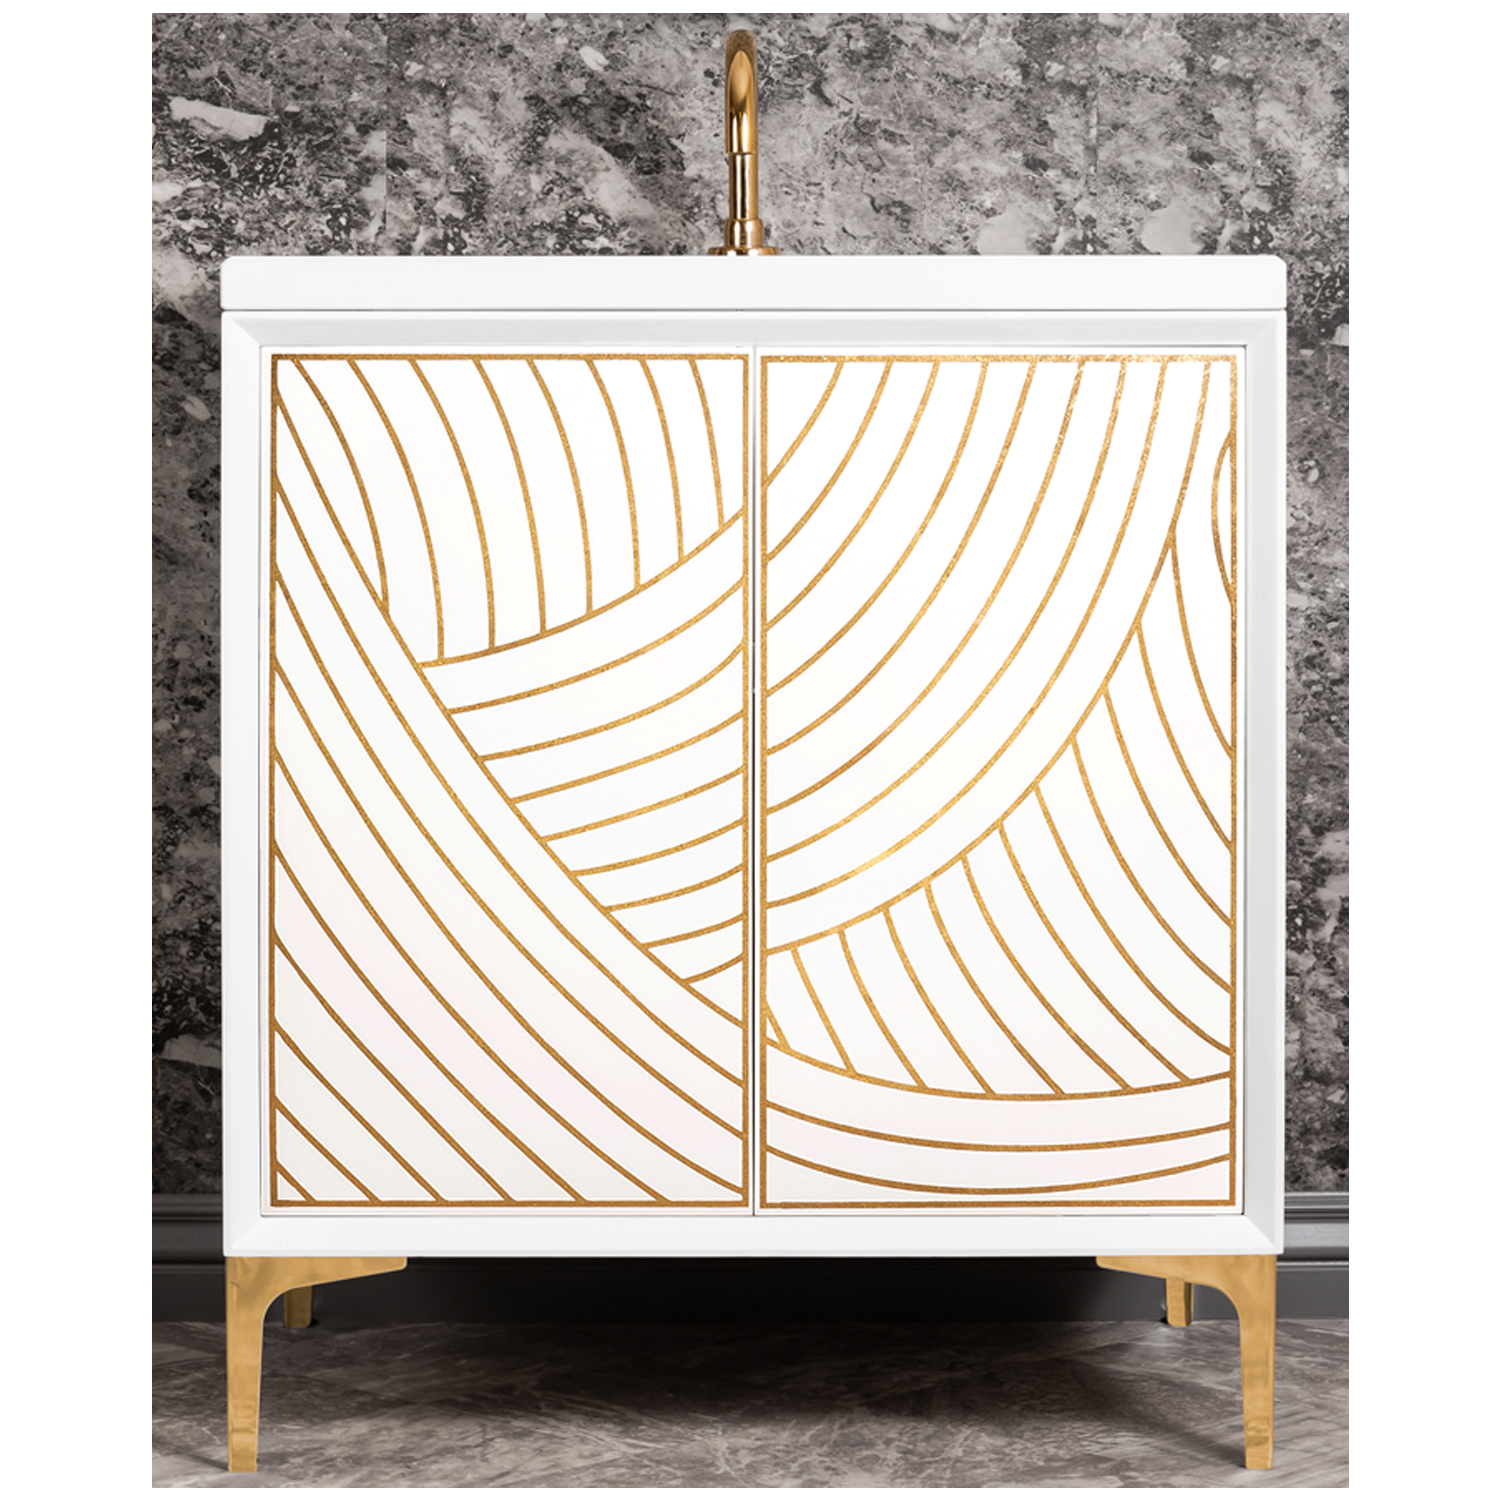 "VAN30W-001   30"" White Lateen - Shown with PB (Polished Brass Finish)"